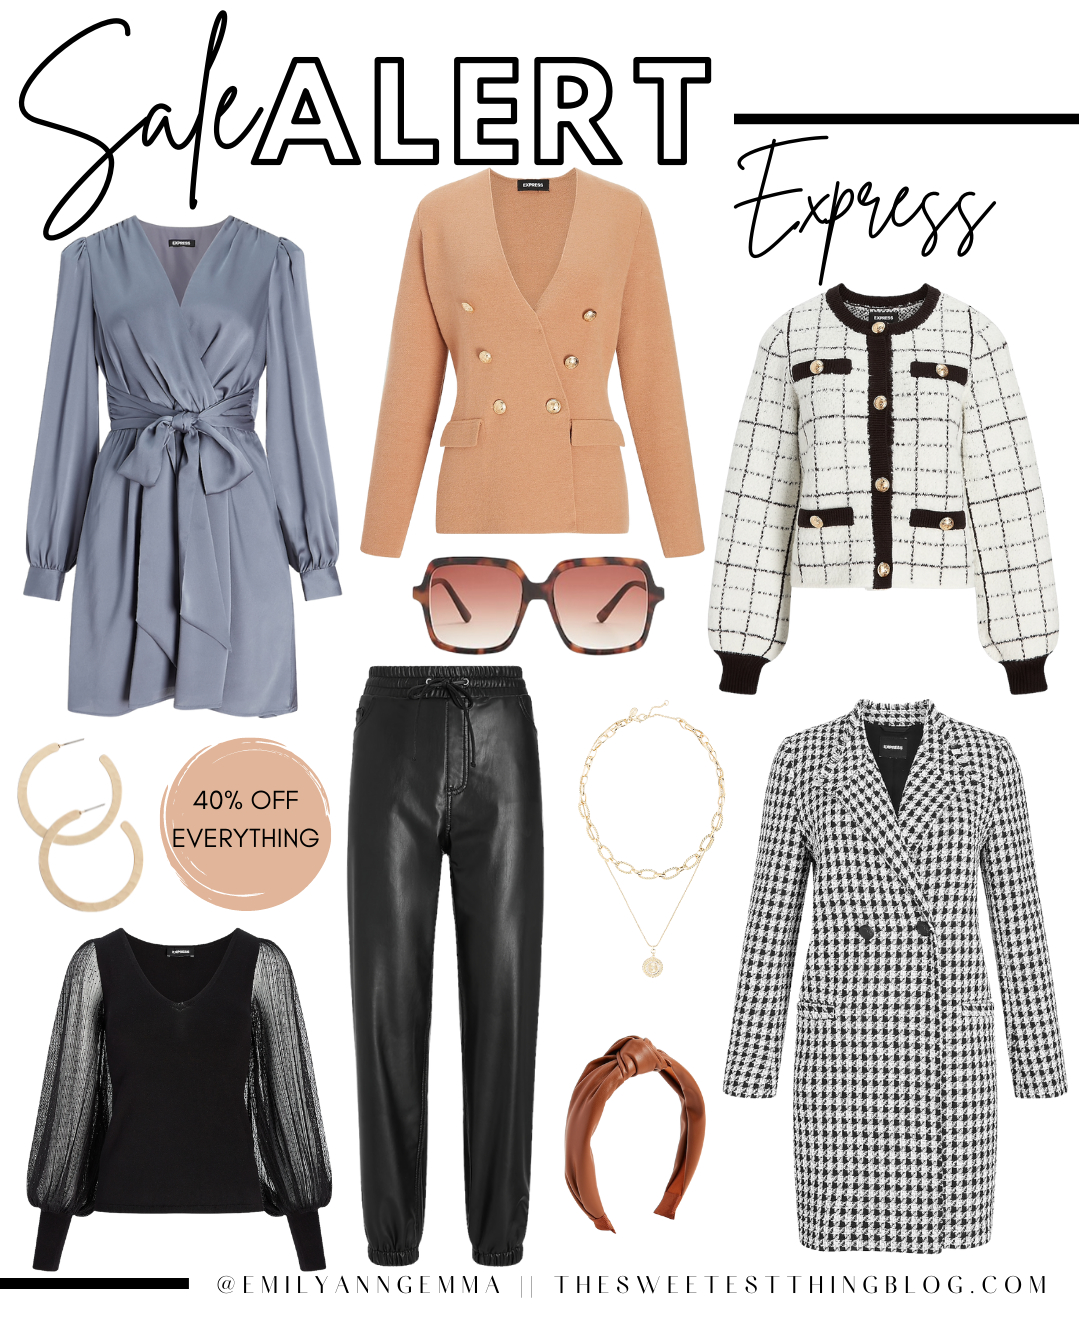 Labor Day Sales, Labor Day 2021 Sale Alert, Express Sale Picks, Fall Fashion 2021 | Top Labor Day Sales by popular US life and style blog, The Sweetest Thing: collage image of Express clothing.